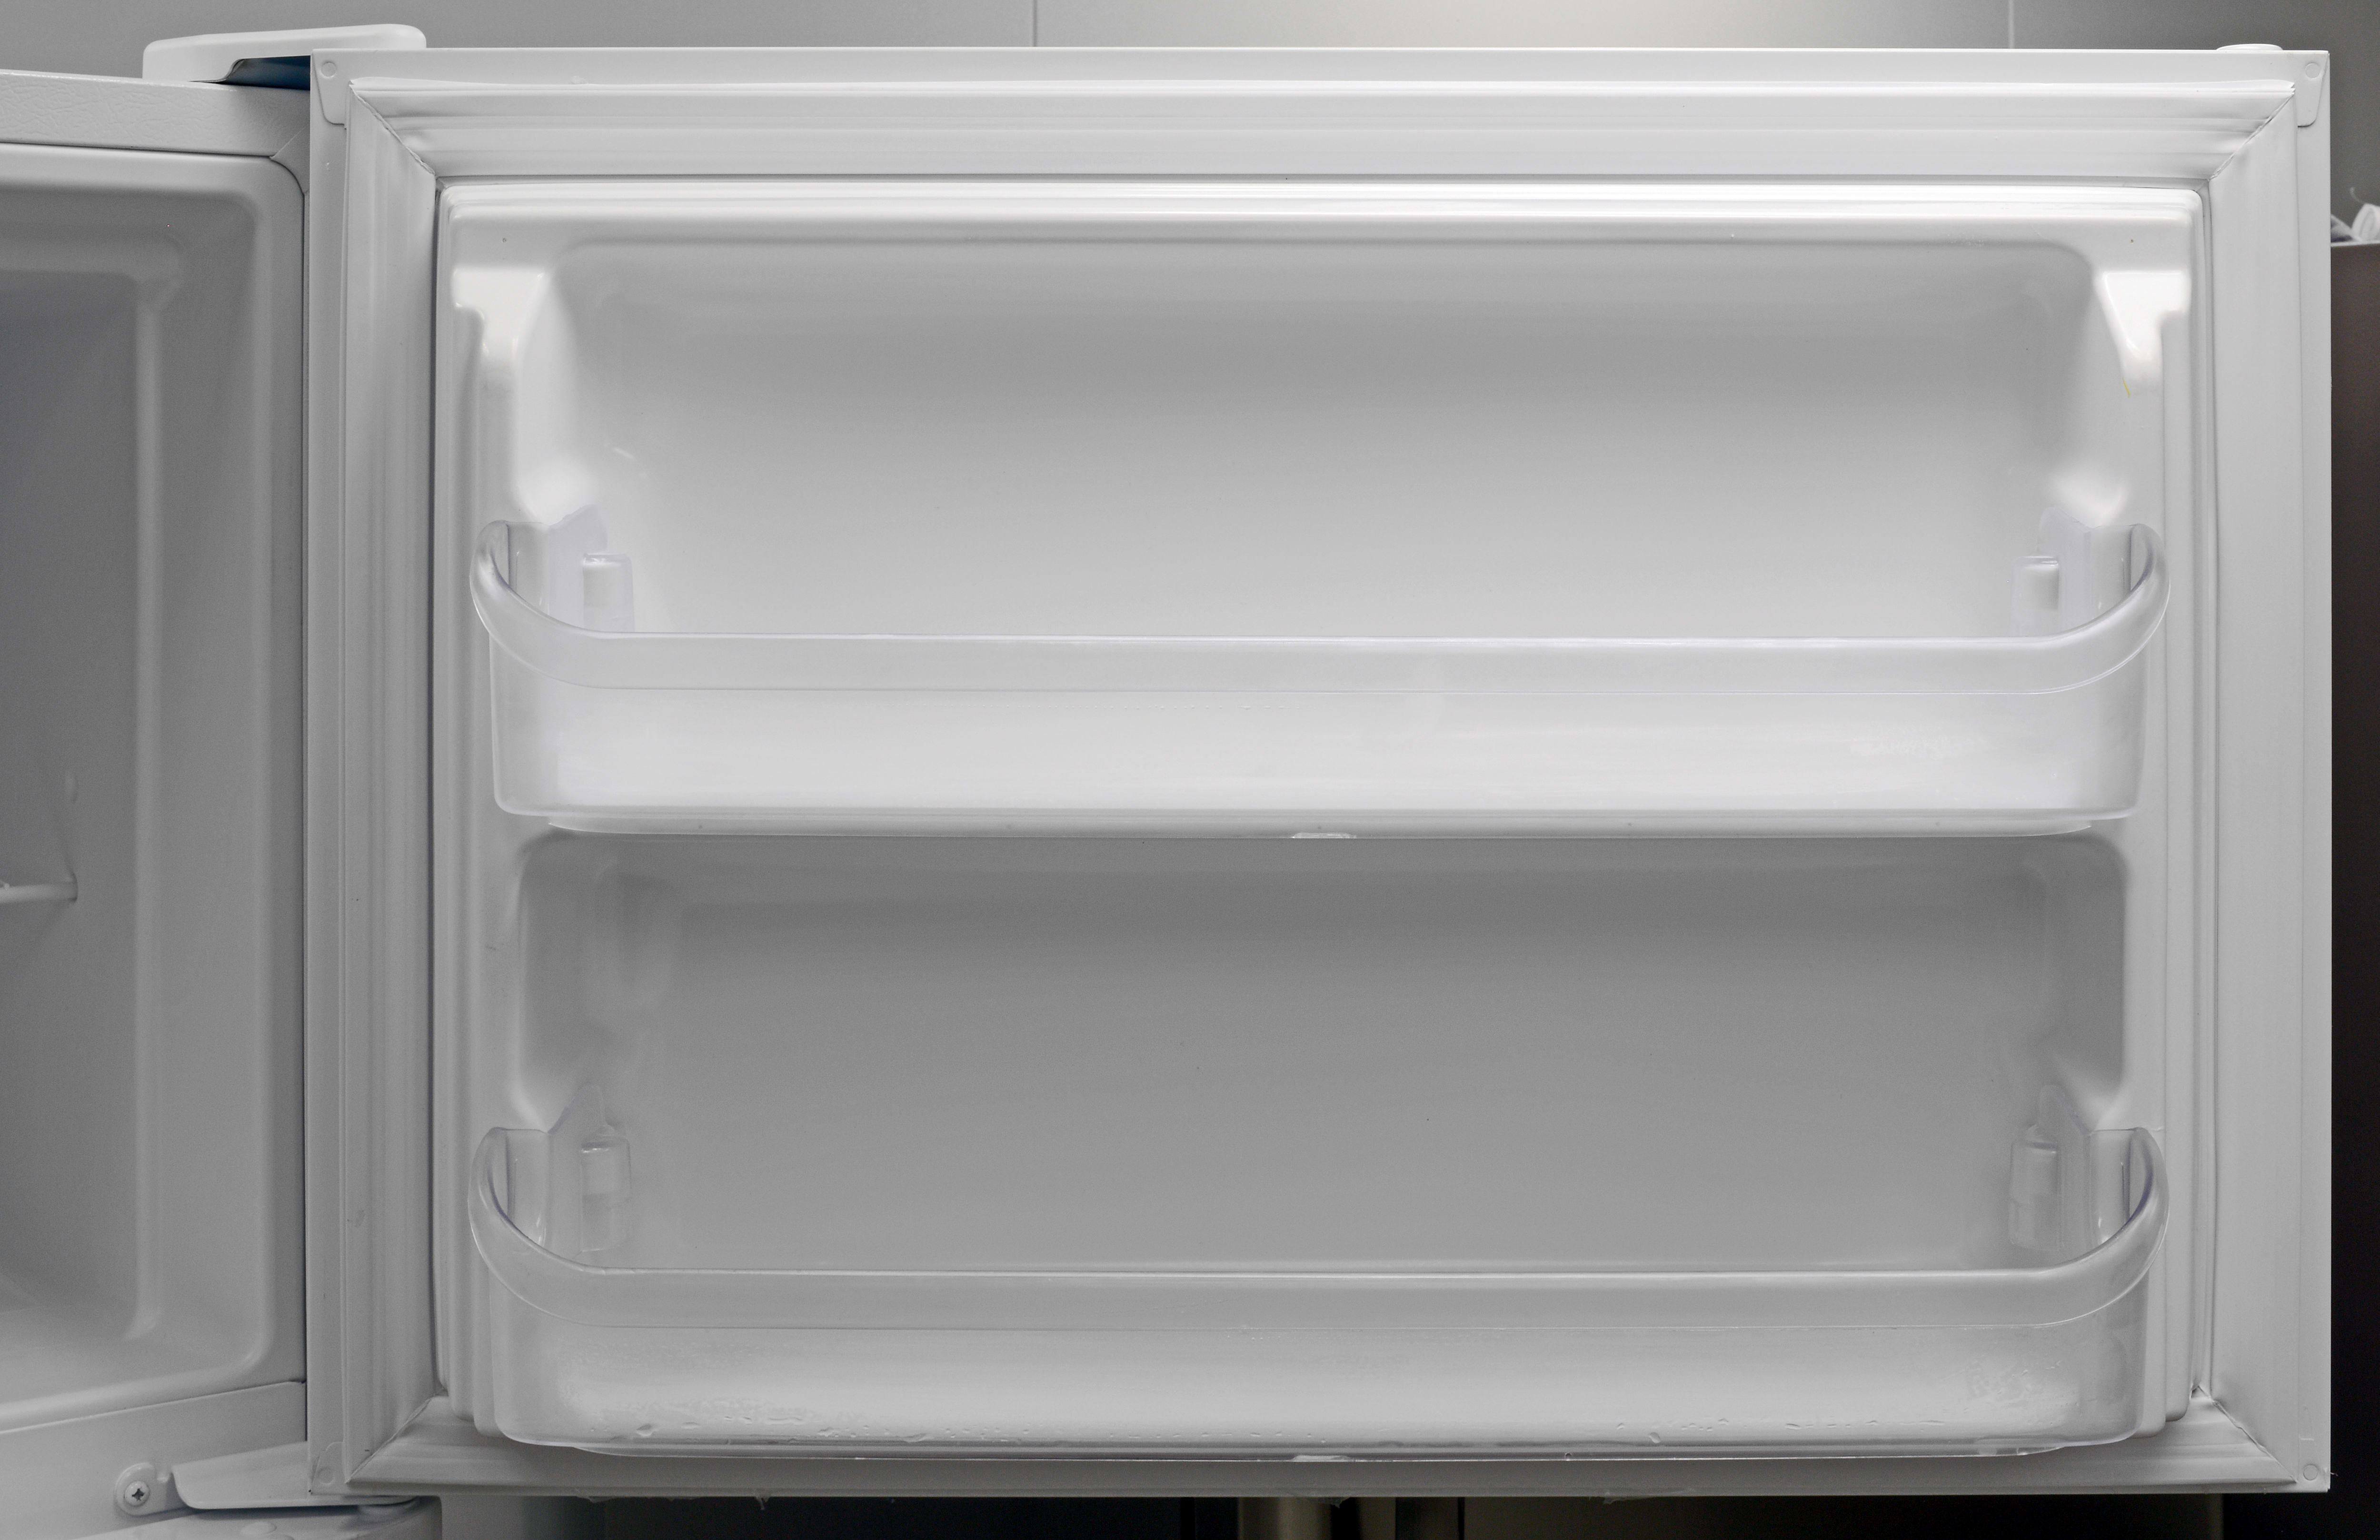 The Frigidaire FFHT2131QP's freezer door, with its fixed shelves, is easily the most basic element of the entire appliance.